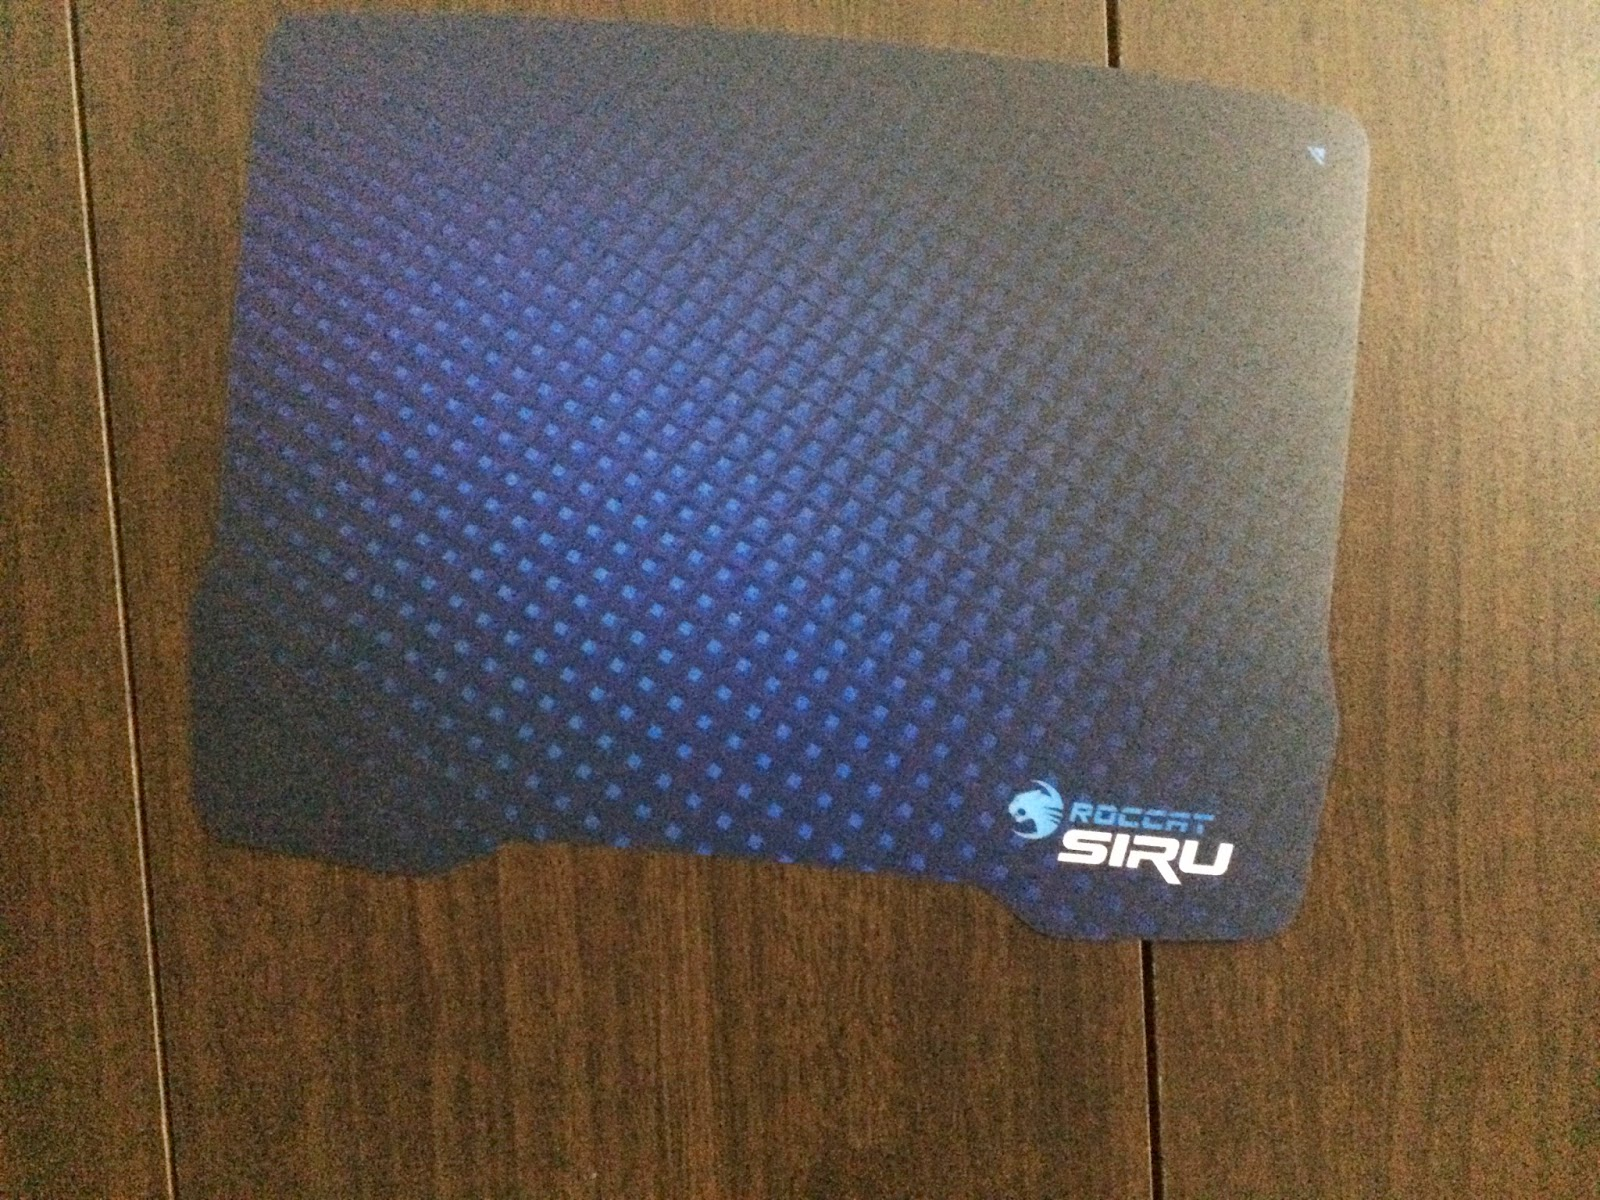 Unboxing & Review - ROCCAT SIRU 39